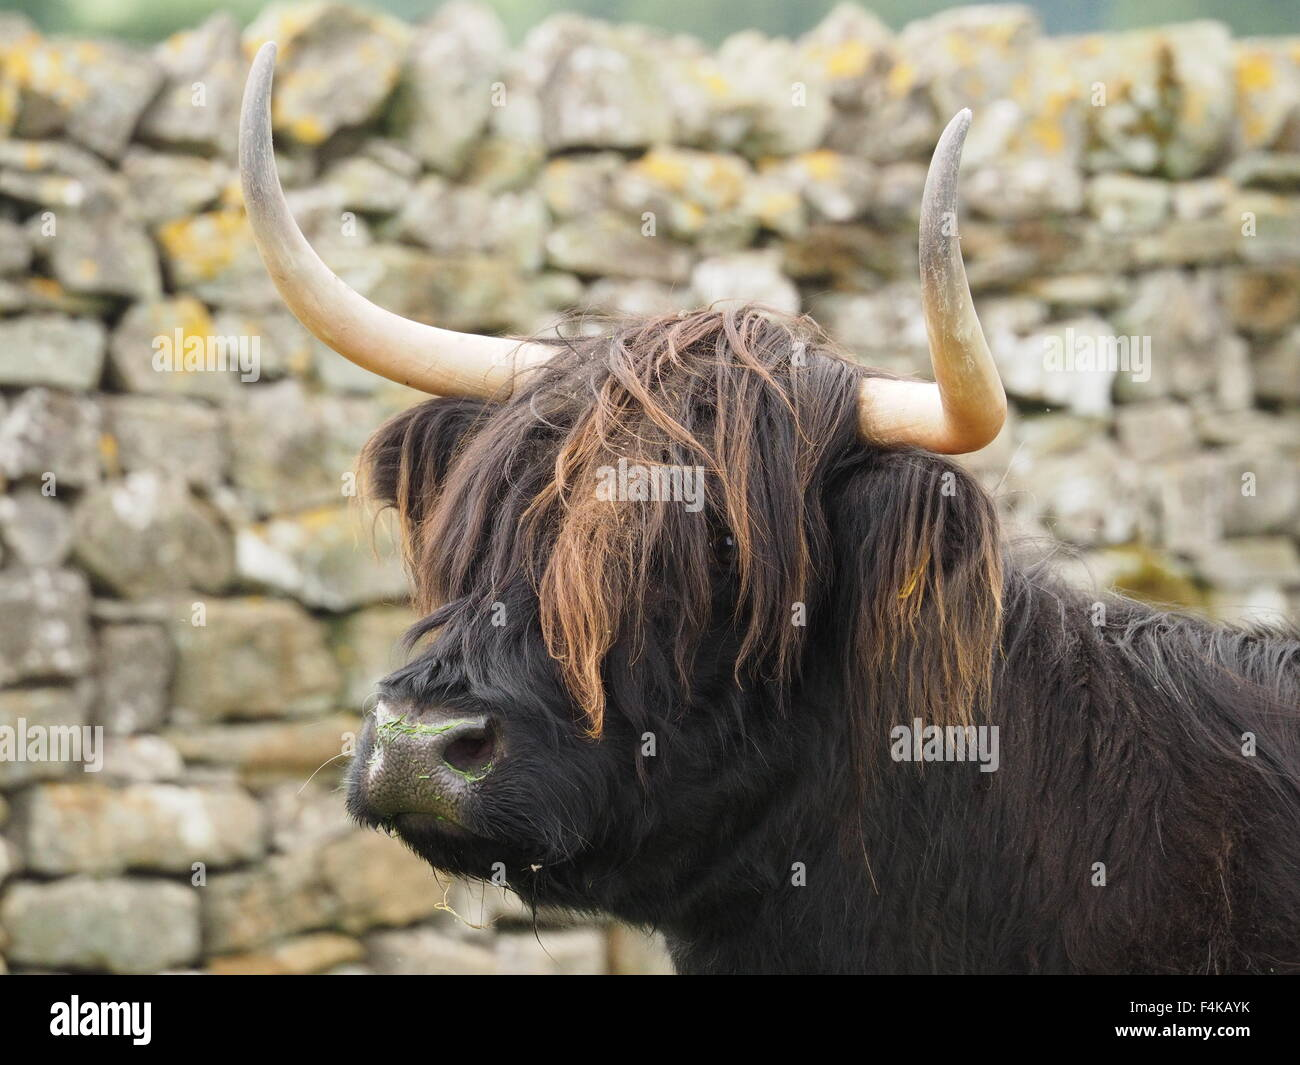 Dark haired highland cow with tousled brown fringe wet nose and sharp horns in profile against dry stone wall - Stock Image